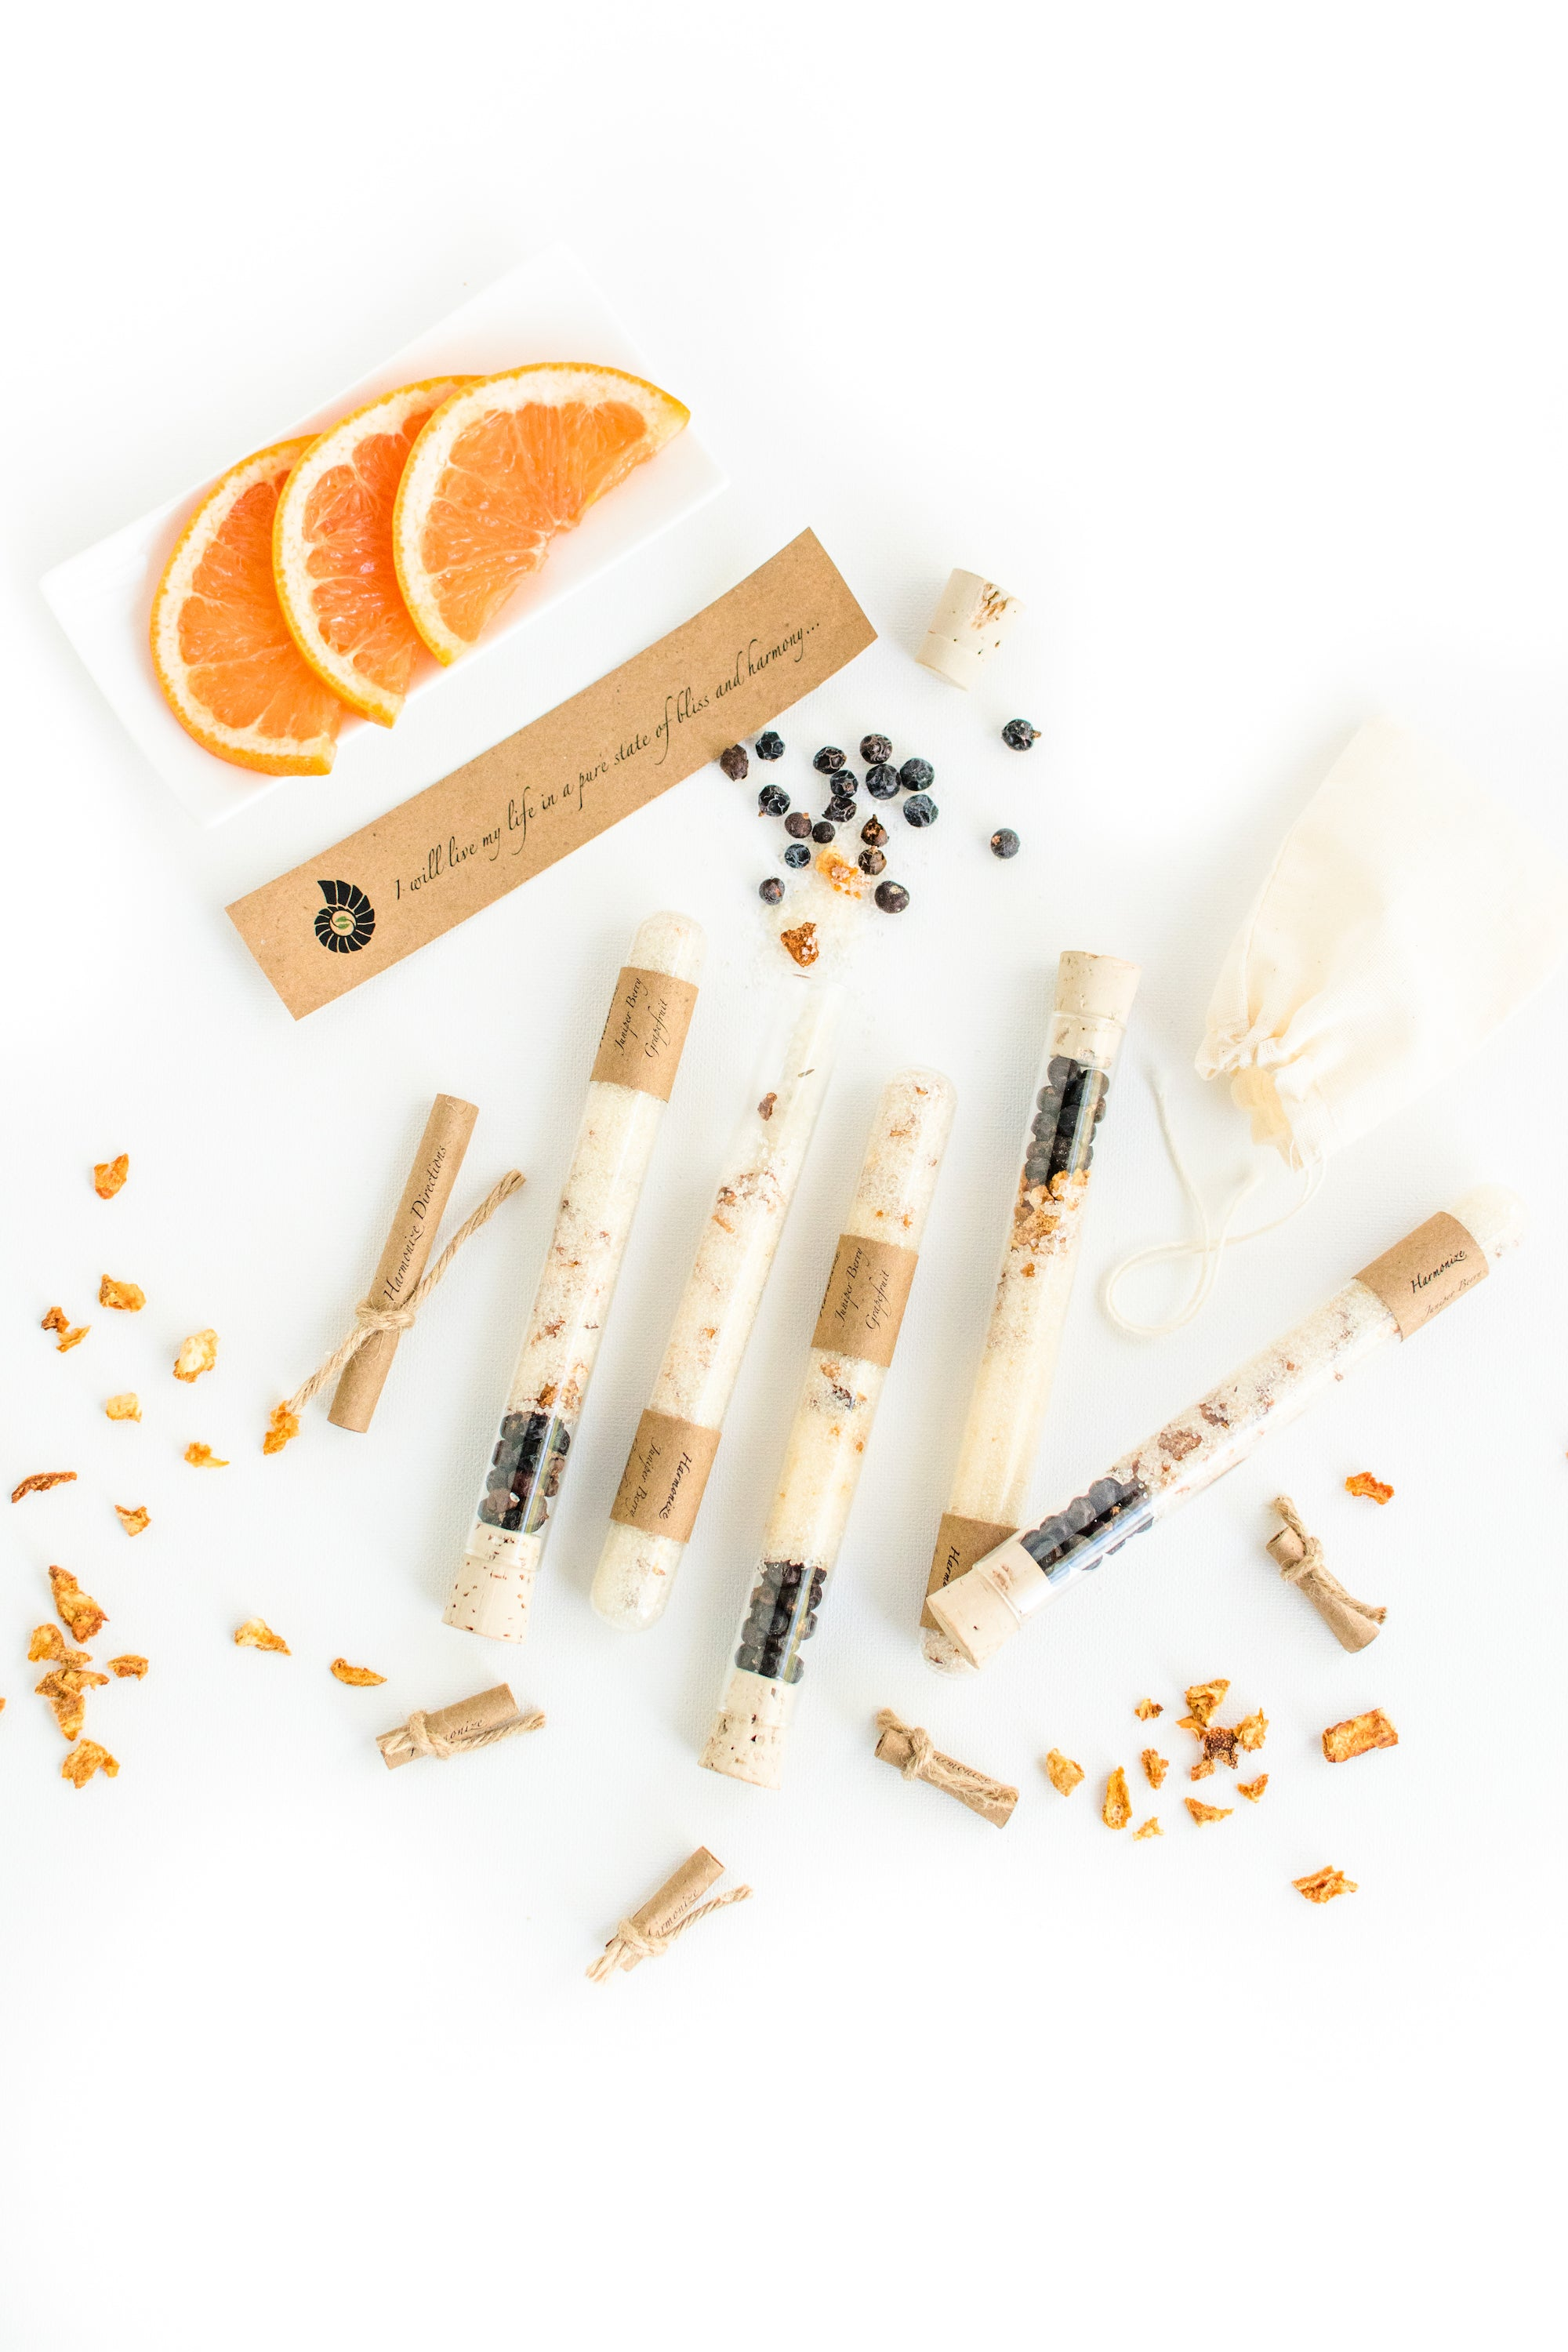 Truly Aesthetic Harmonize Juniper Berry Grapefruit Bath Affirmations Bath Salt Tubes, Positive Affirmation and Ingredients